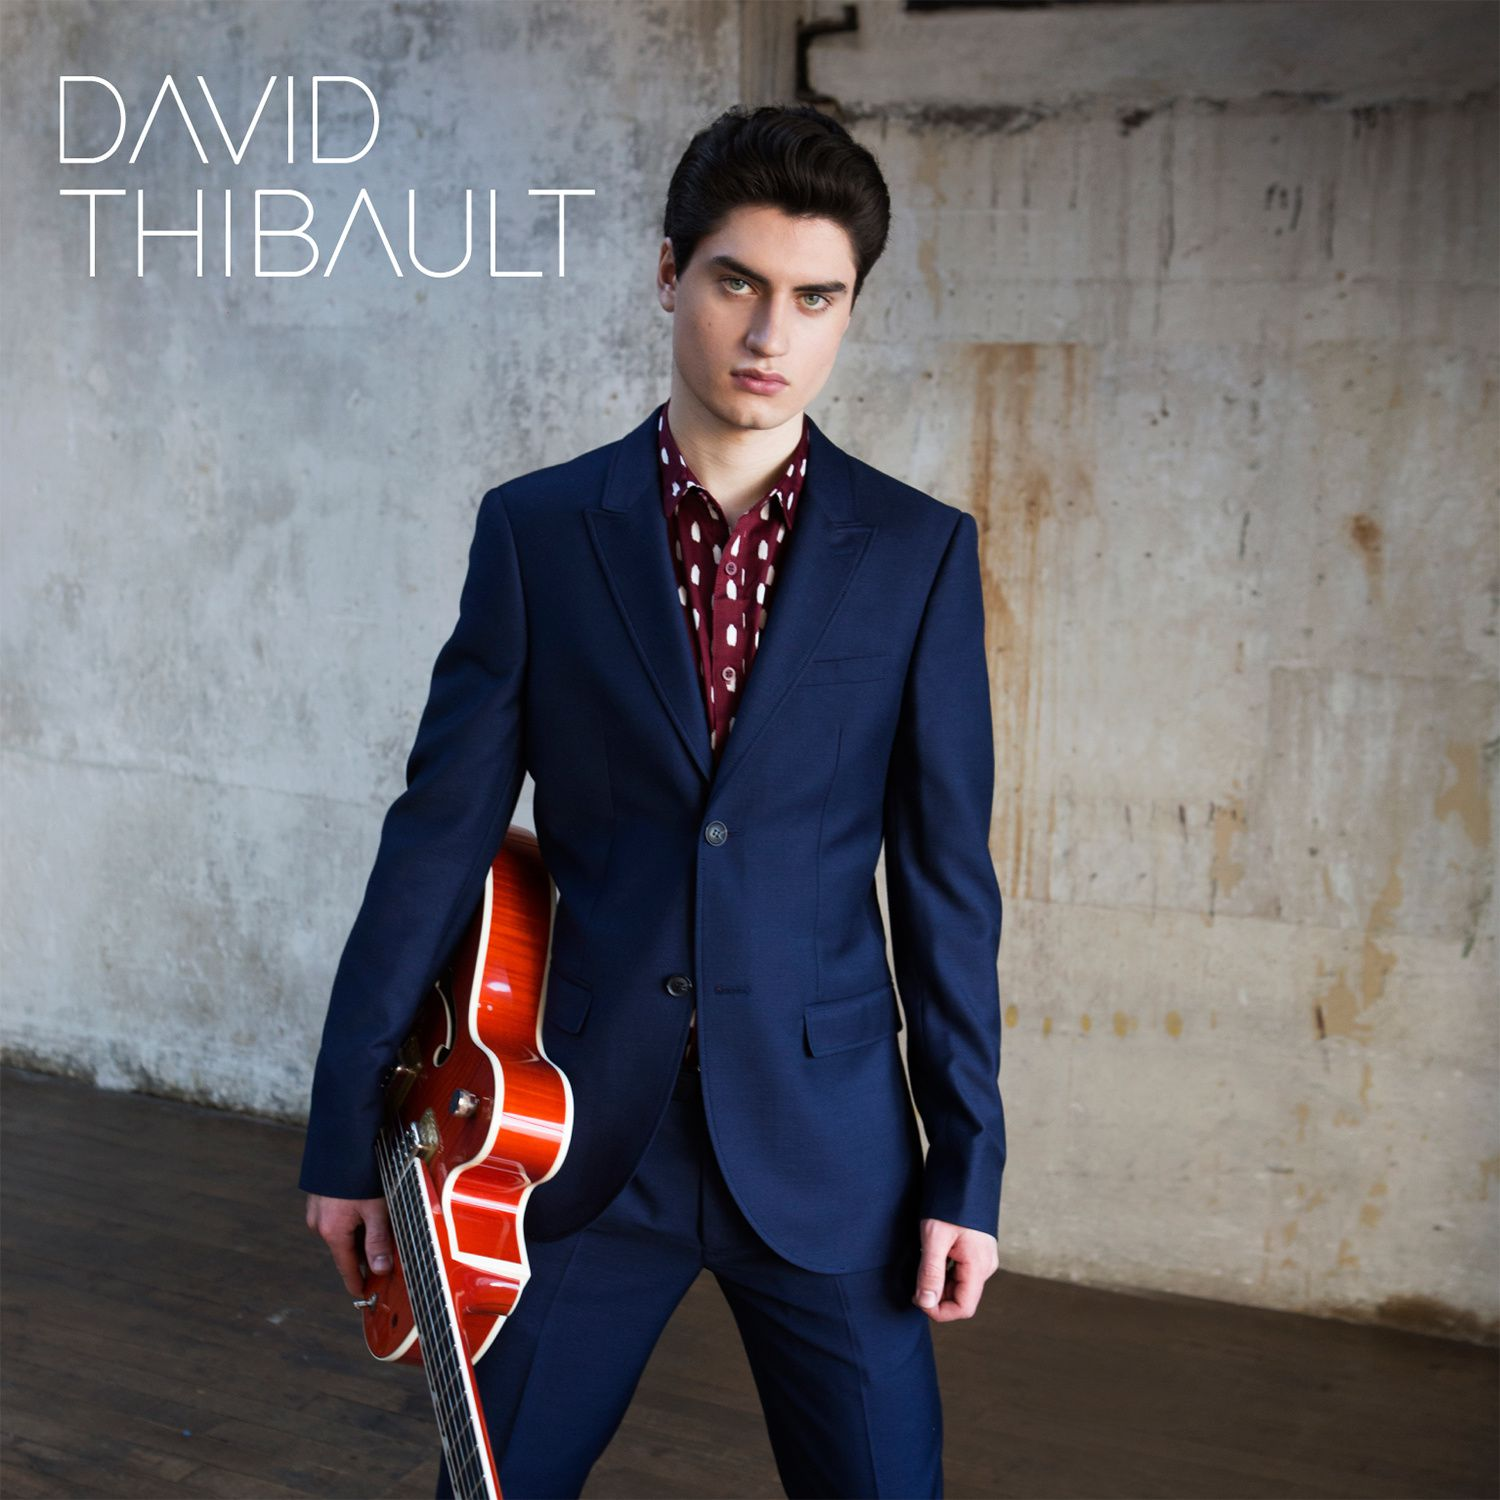 INTERVIEW DE DAVID THIBAULT (THE VOICE 4) - 23 MAI 2016